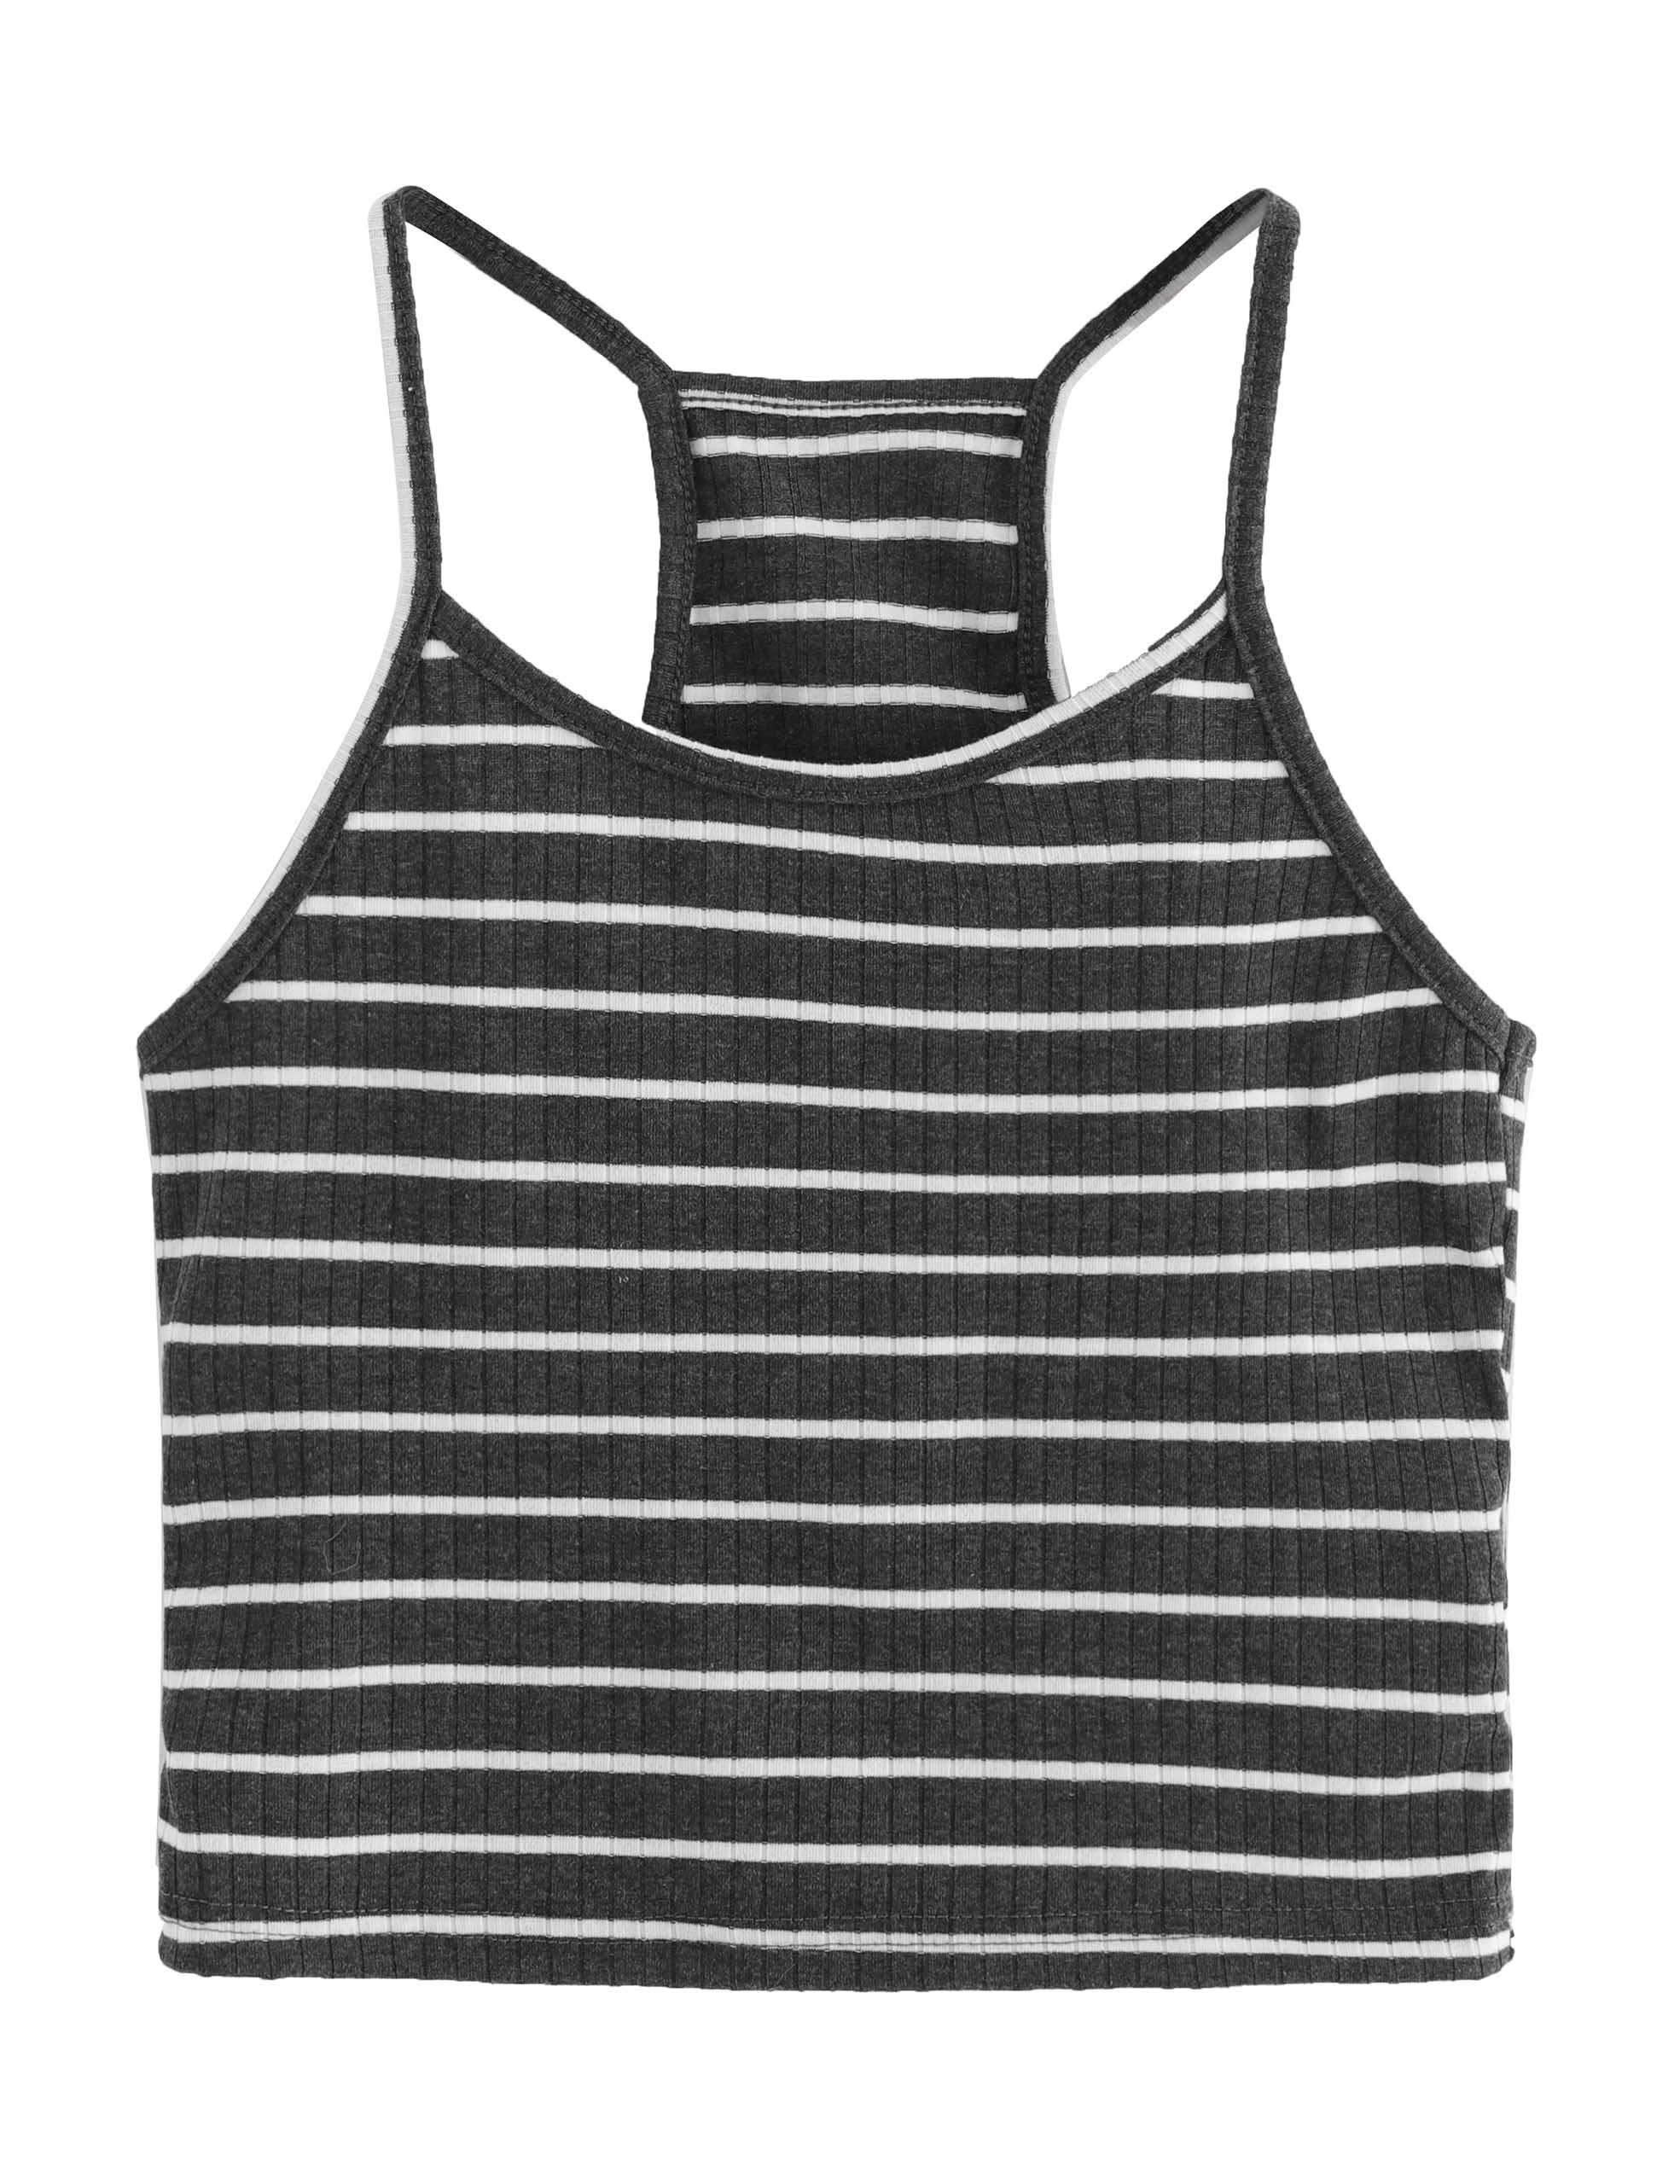 SheIn Women's Summer Basic Sexy Strappy Sleeveless Racerback Crop Top X-Small Dark Grey#1#1